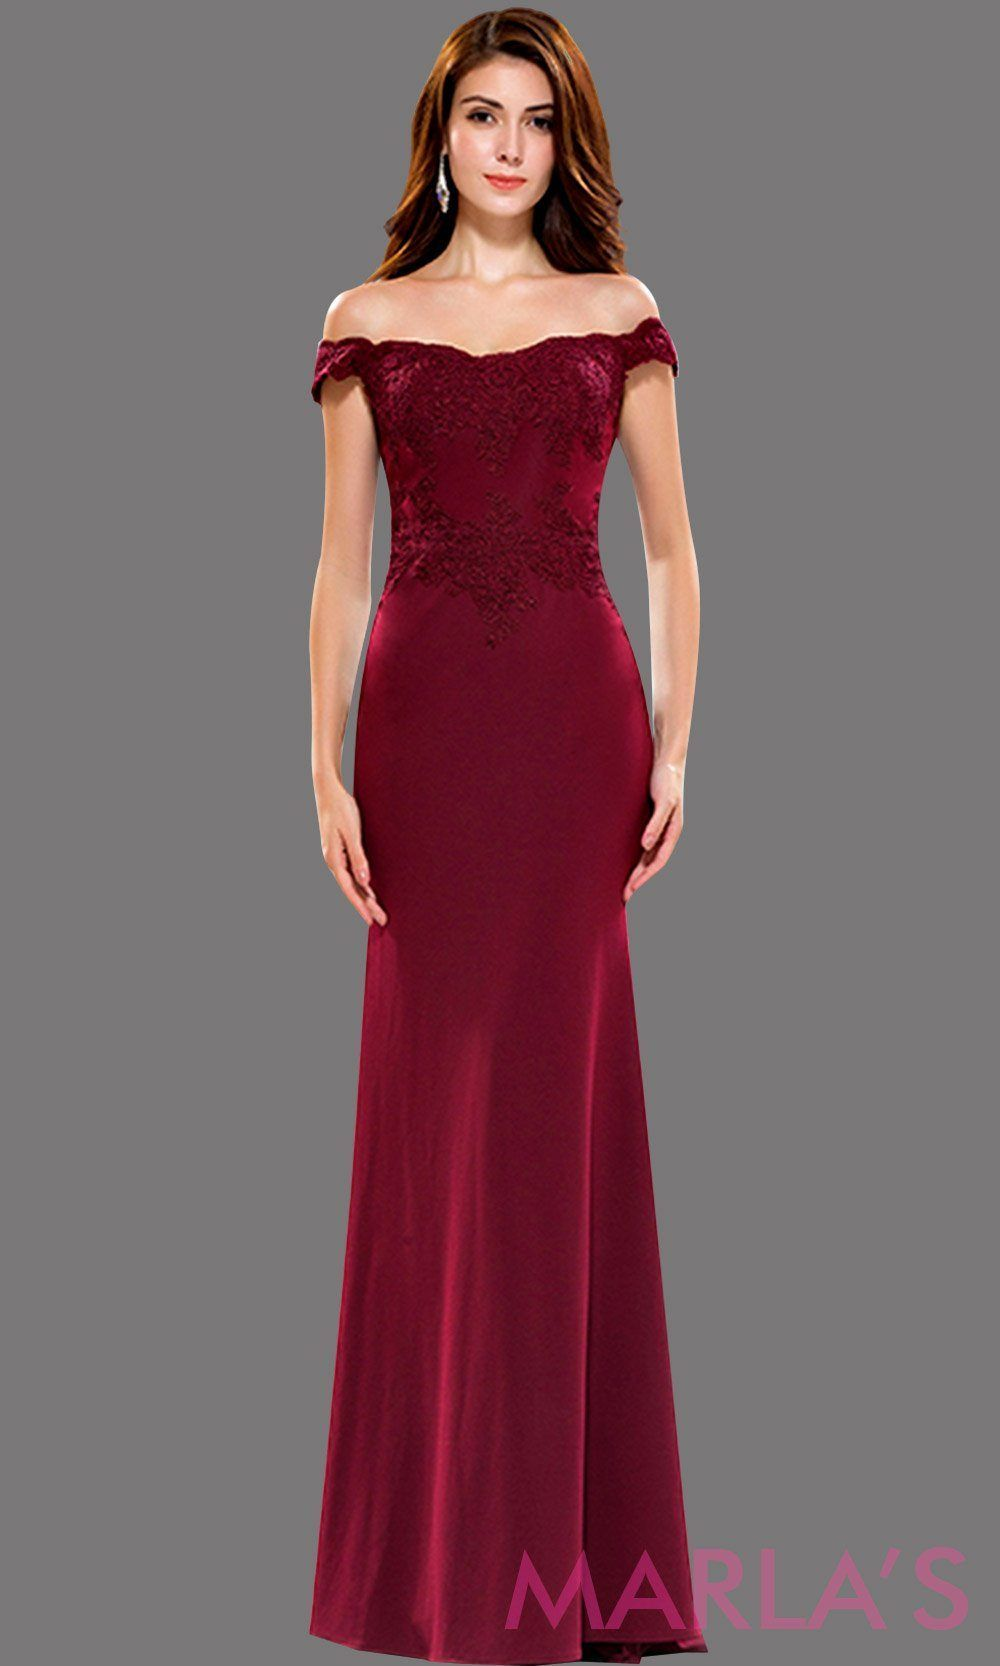 1d0d13970c Long burgundy off shoulder fitted dress with lace top. This dark red sleek  and sexy dress is perfect for prom, formal evening party, gala, wedding  guest ...